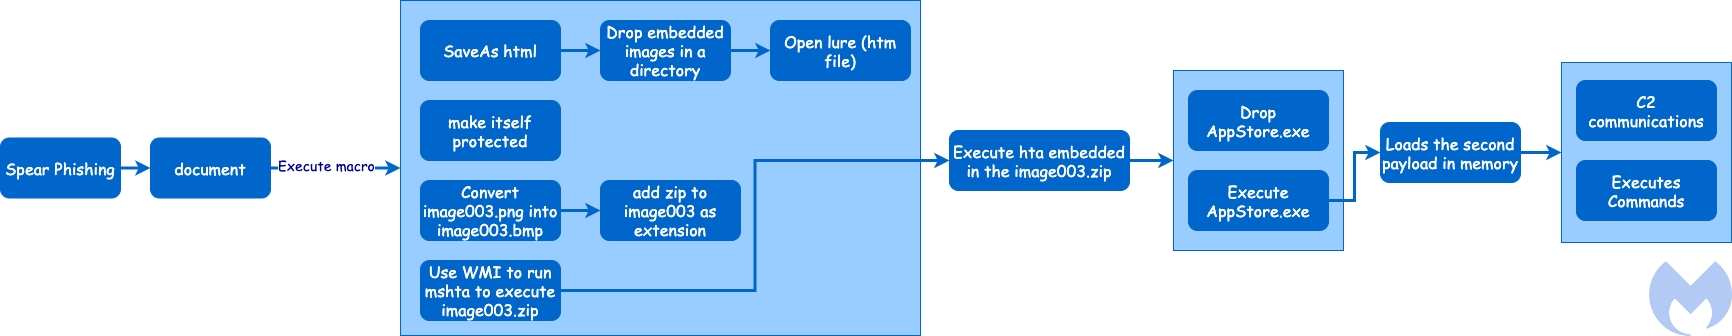 North Korea-linked Lazarus APT hides malicious code within BMP image to avoid detection